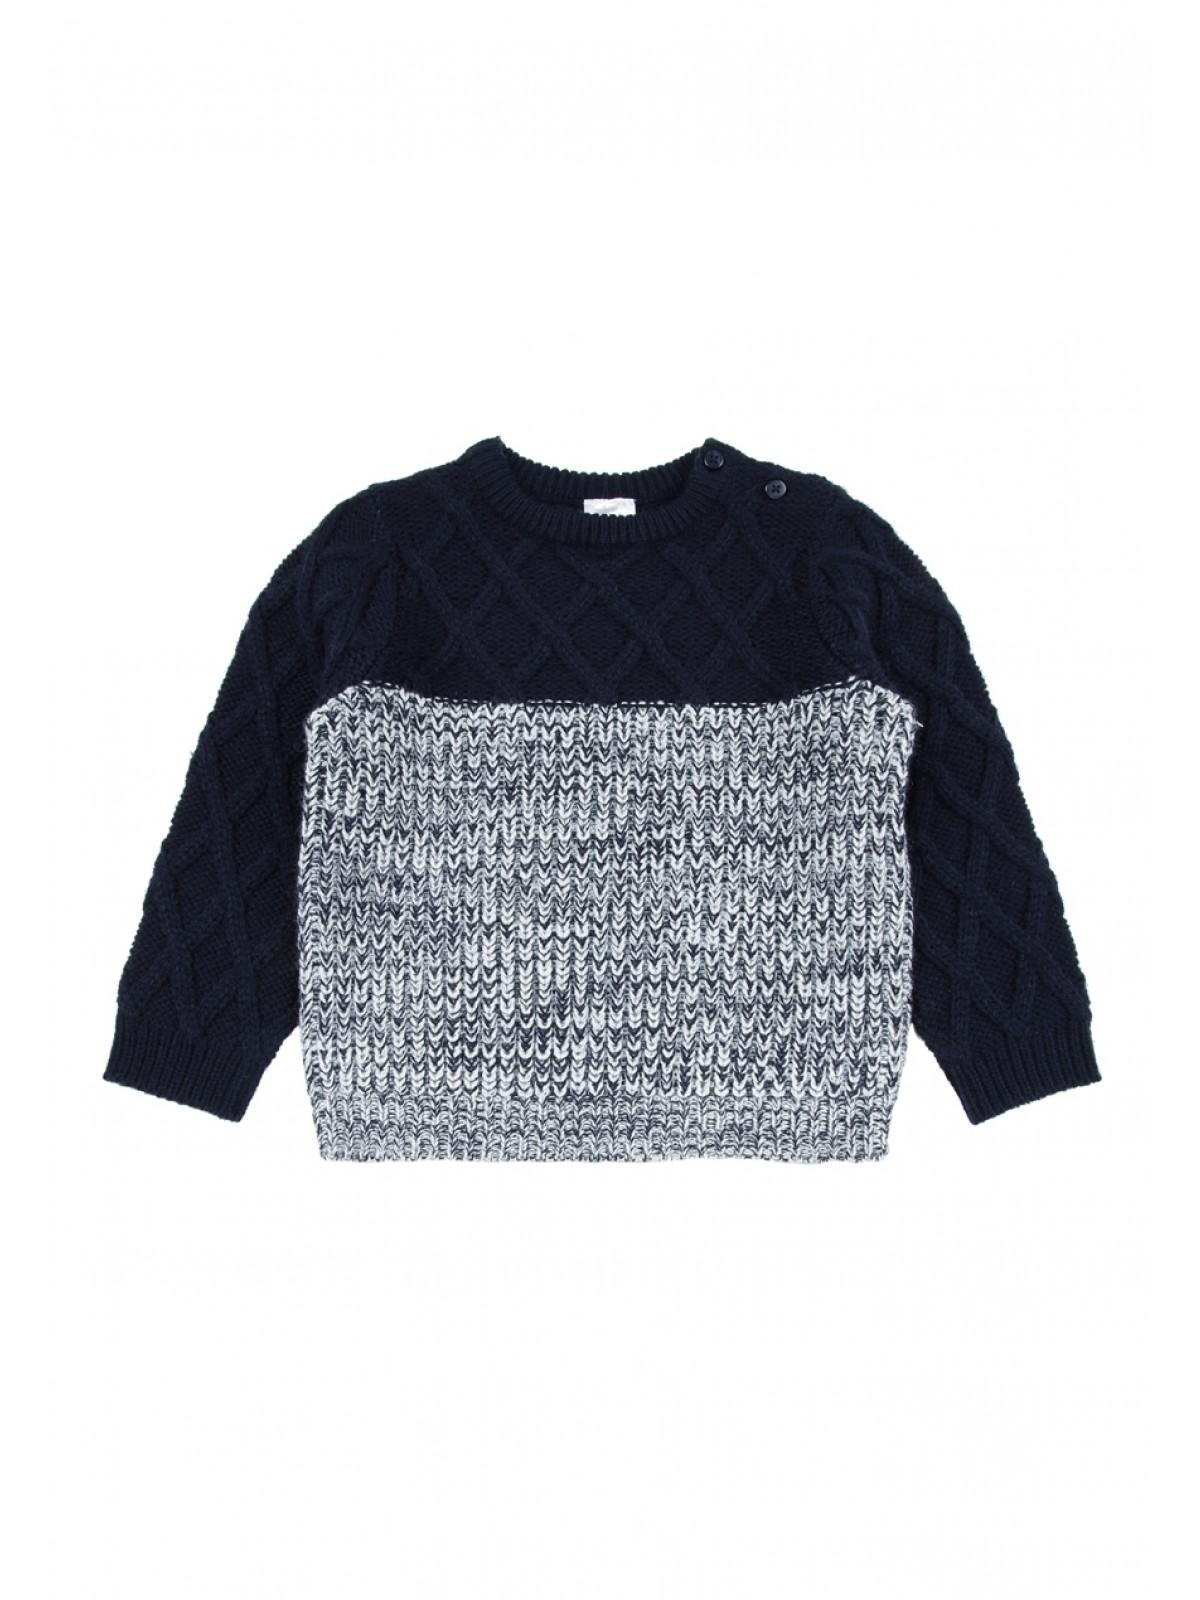 21eb1f116 Home; Baby Boys Navy Cable Knit Jumper. Back. PreviousNext